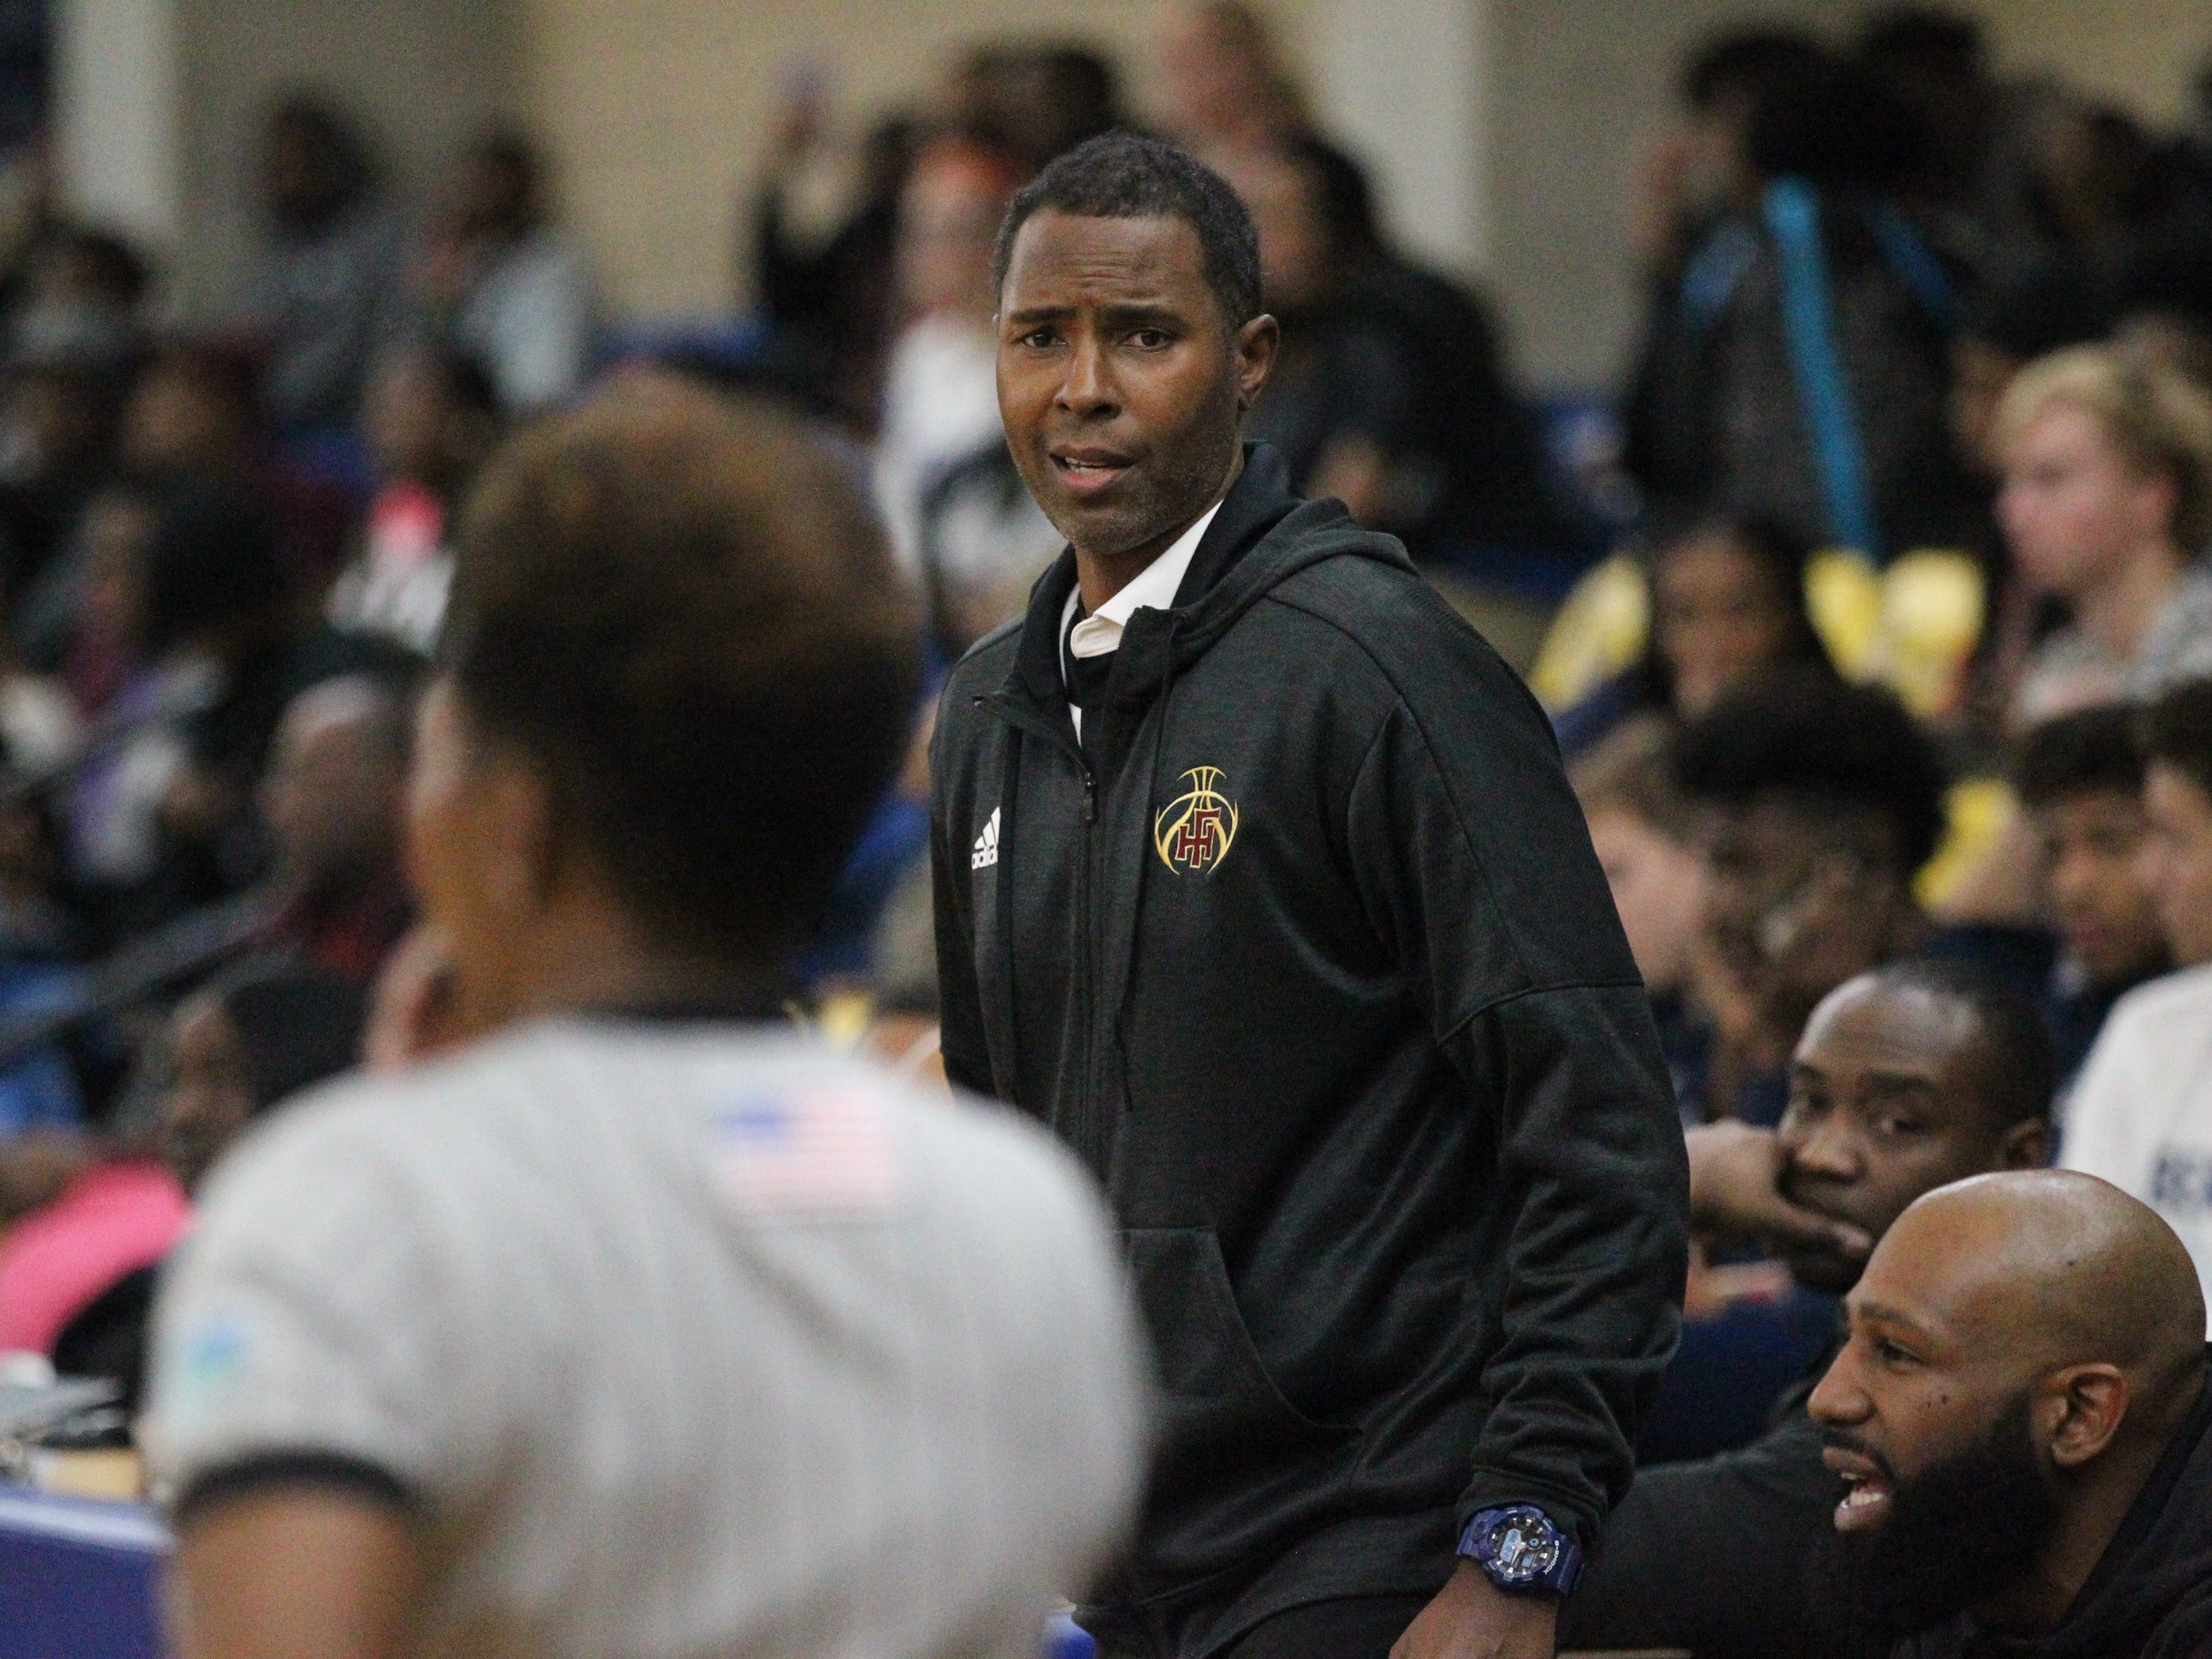 Florida High boys basketball coach Charlie Ward talks to a referee during the 2018 Capital City Holiday Classic at TCC.